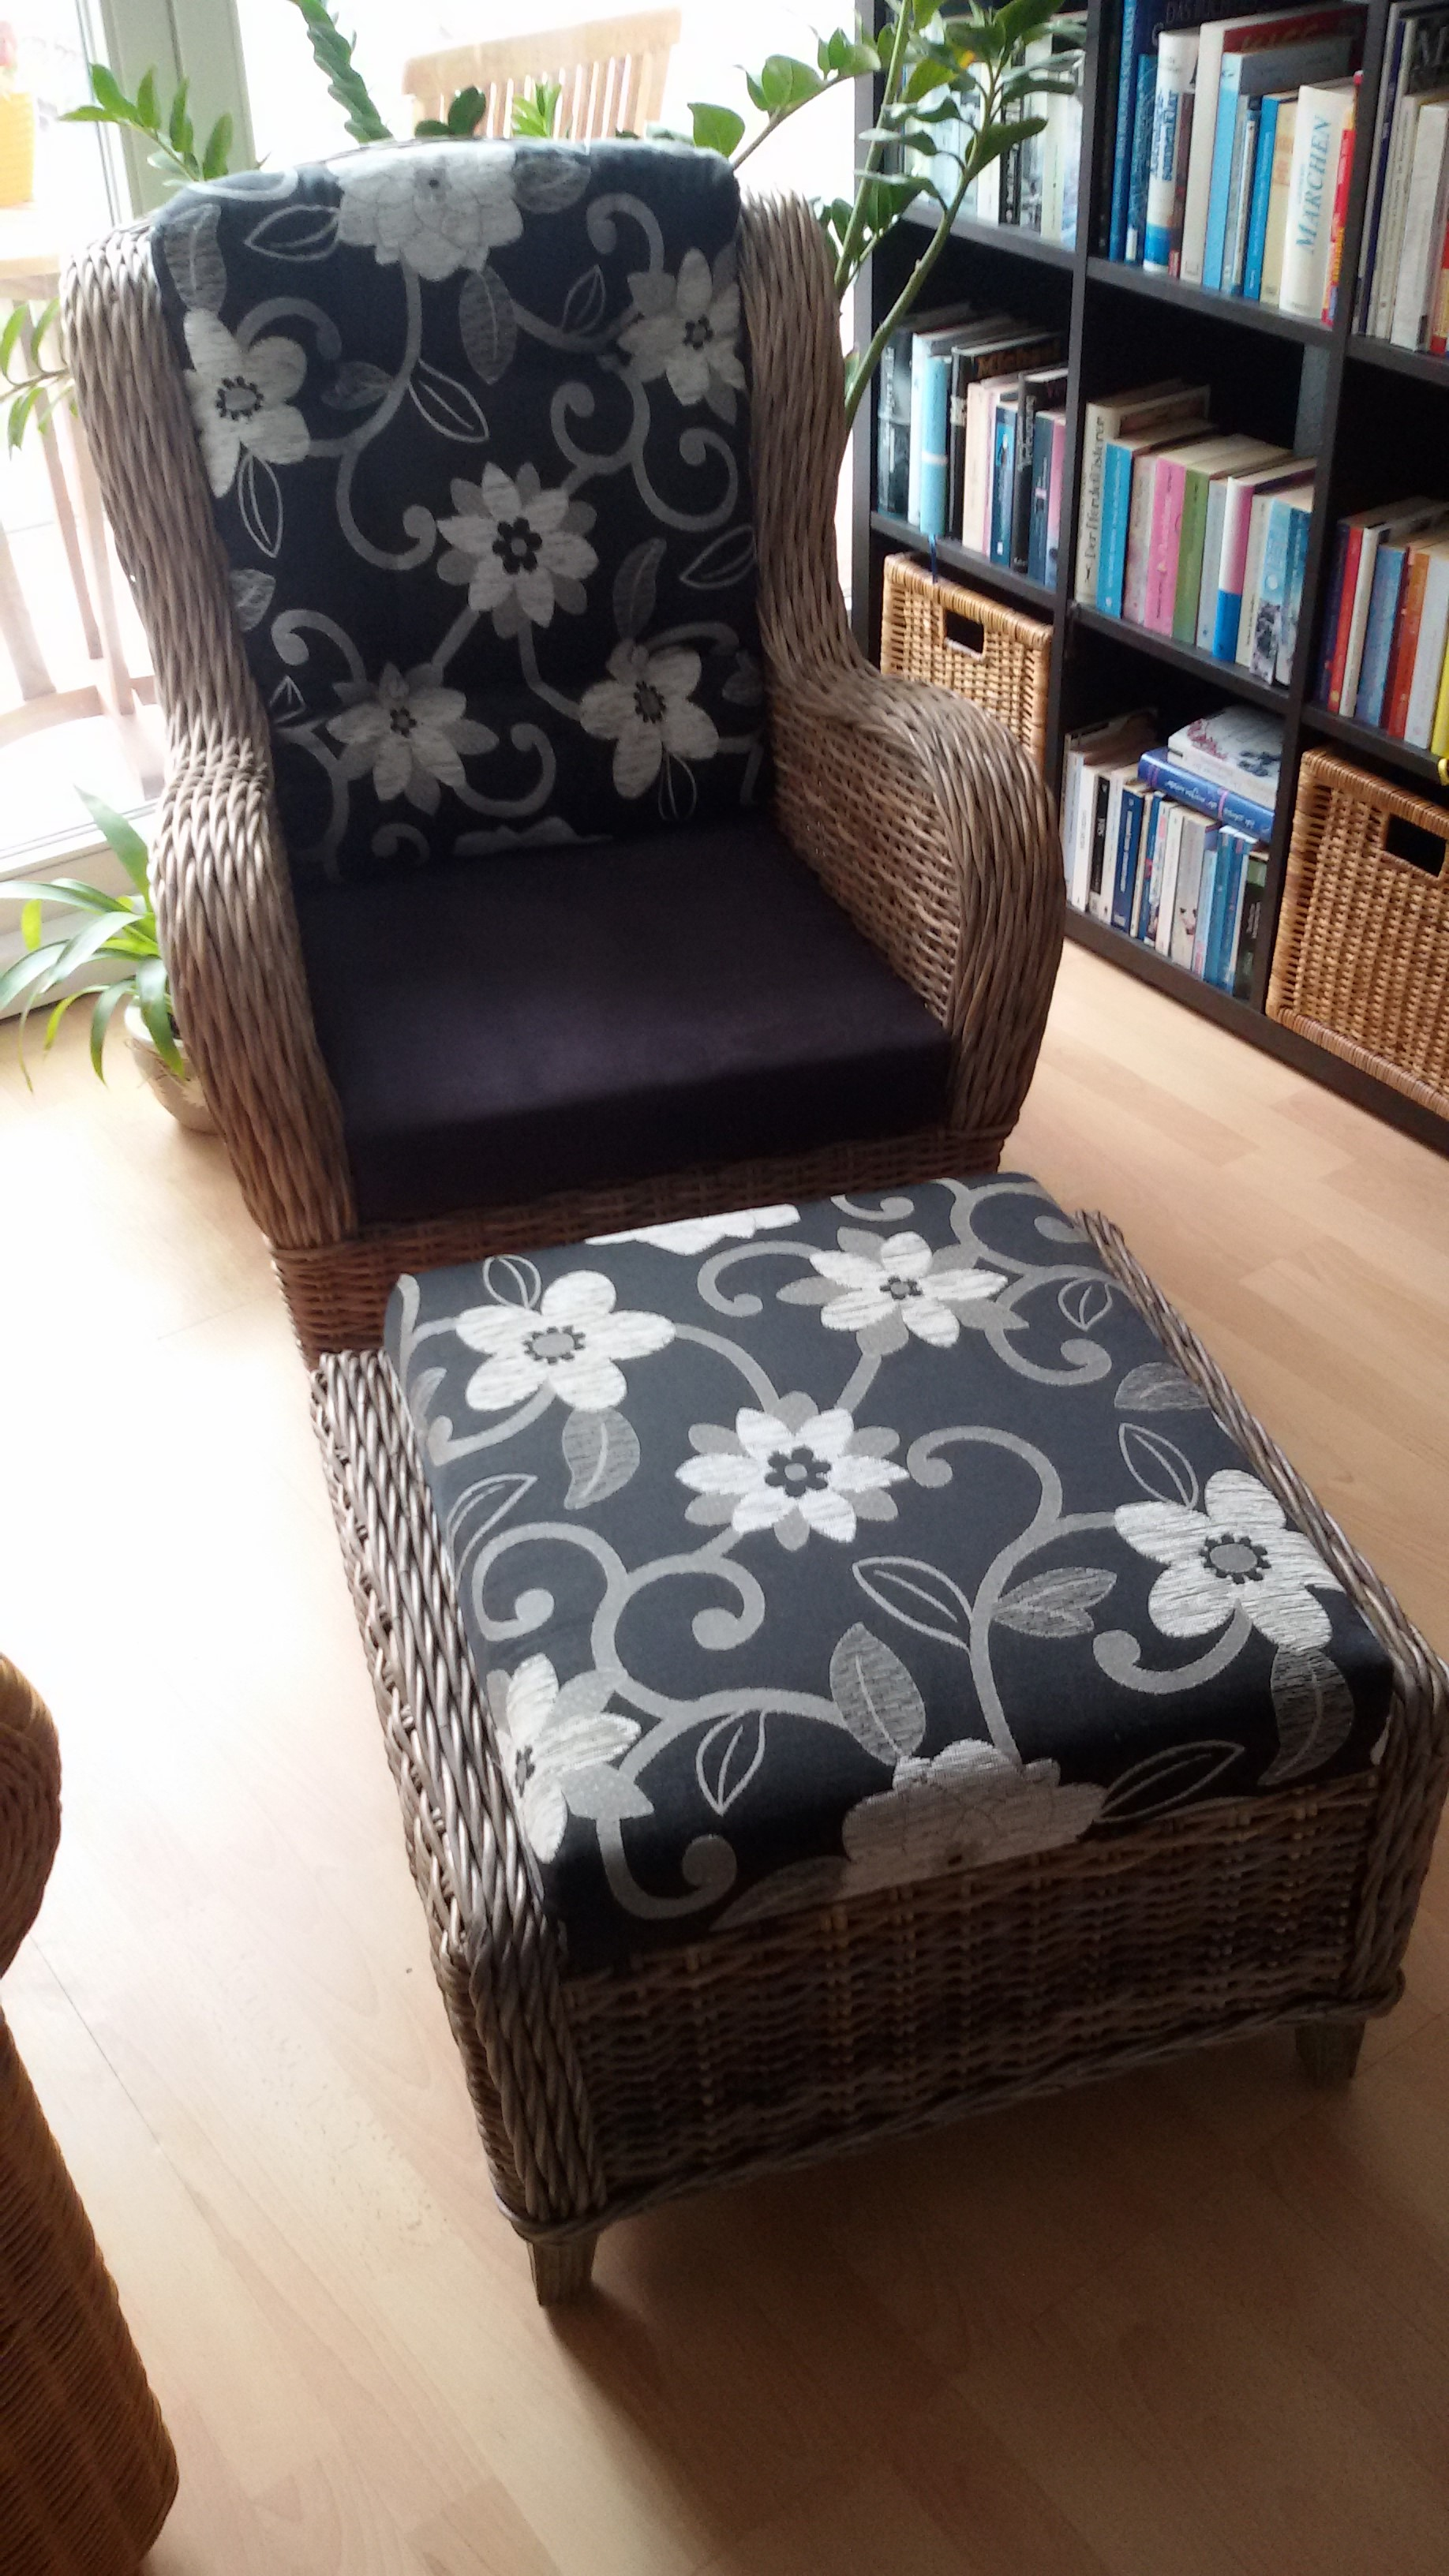 ohrensessel fernsehsessel hochlehner mit fu hocker rattan korbhaus. Black Bedroom Furniture Sets. Home Design Ideas